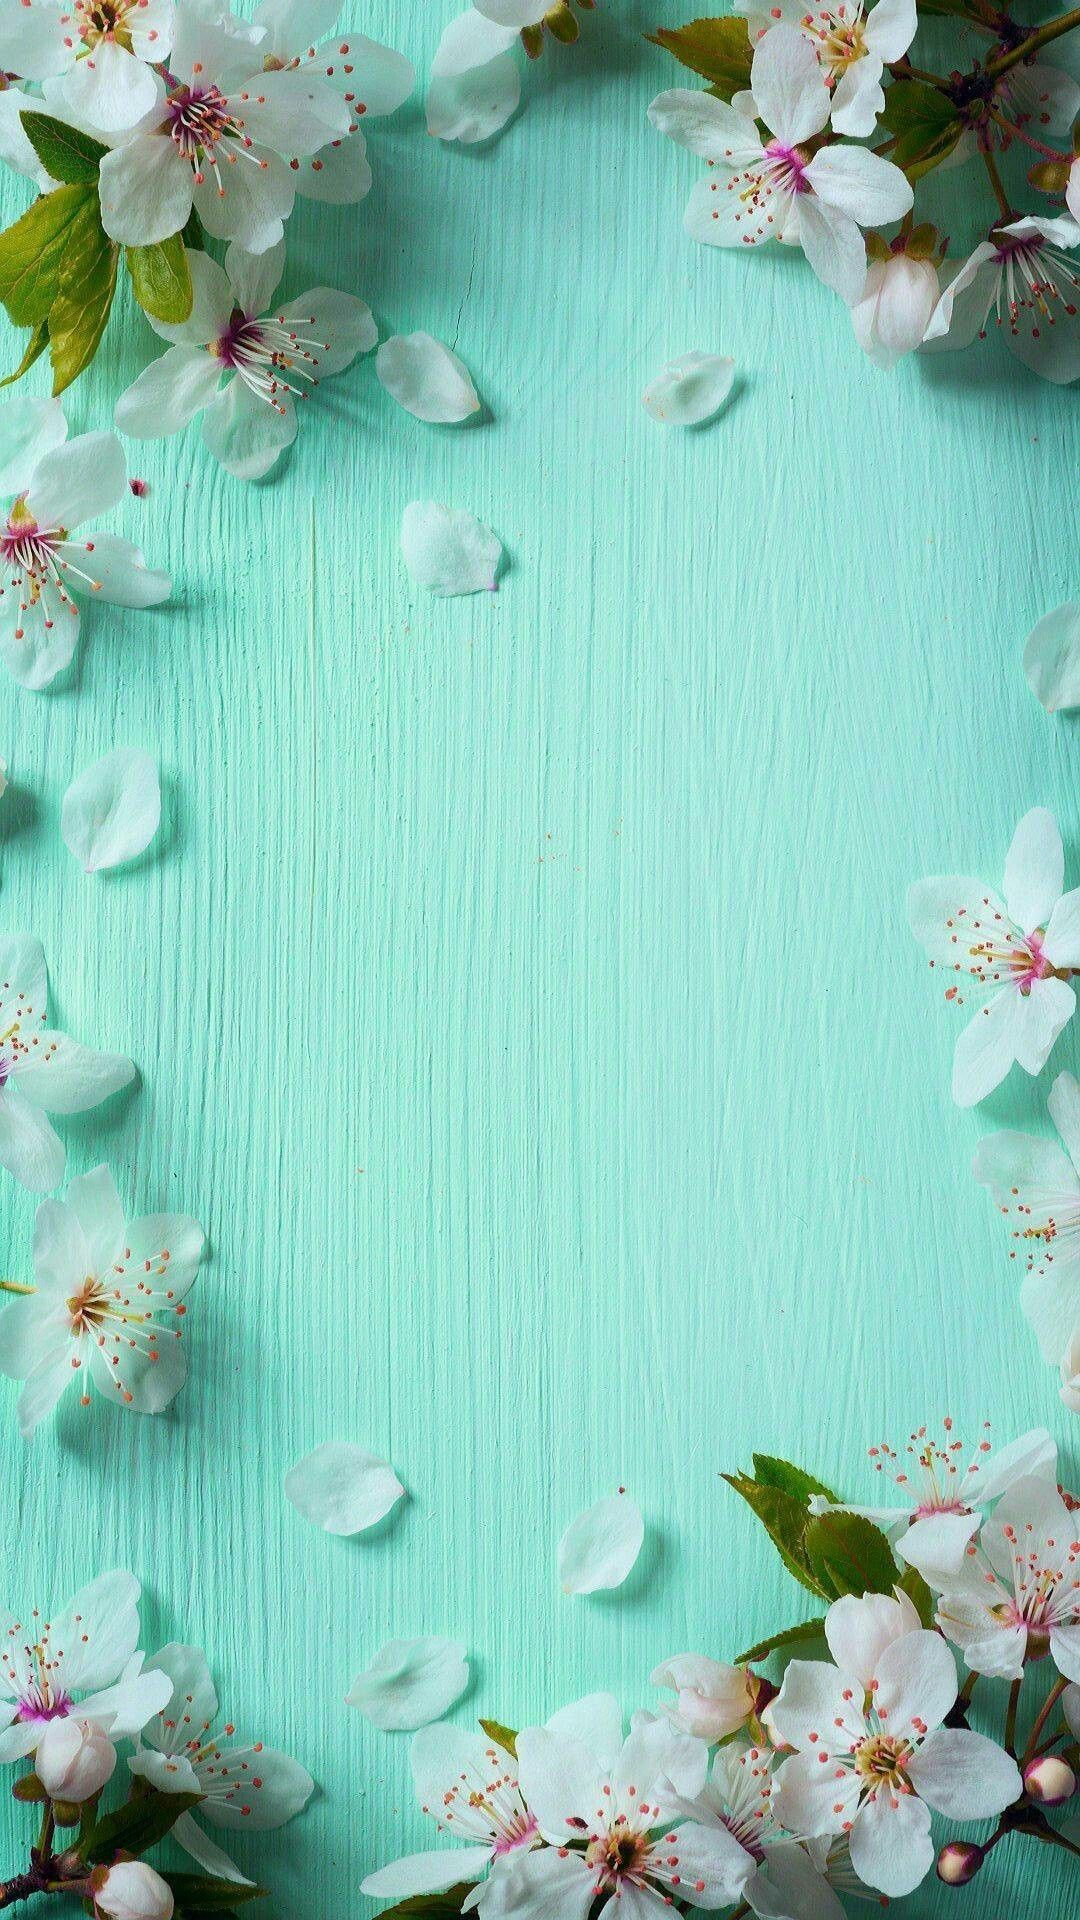 Cute Wallpaper Hd For Mobile Free Download Beautiful Spring Wallpapers For Iphone Pixelstalk Net